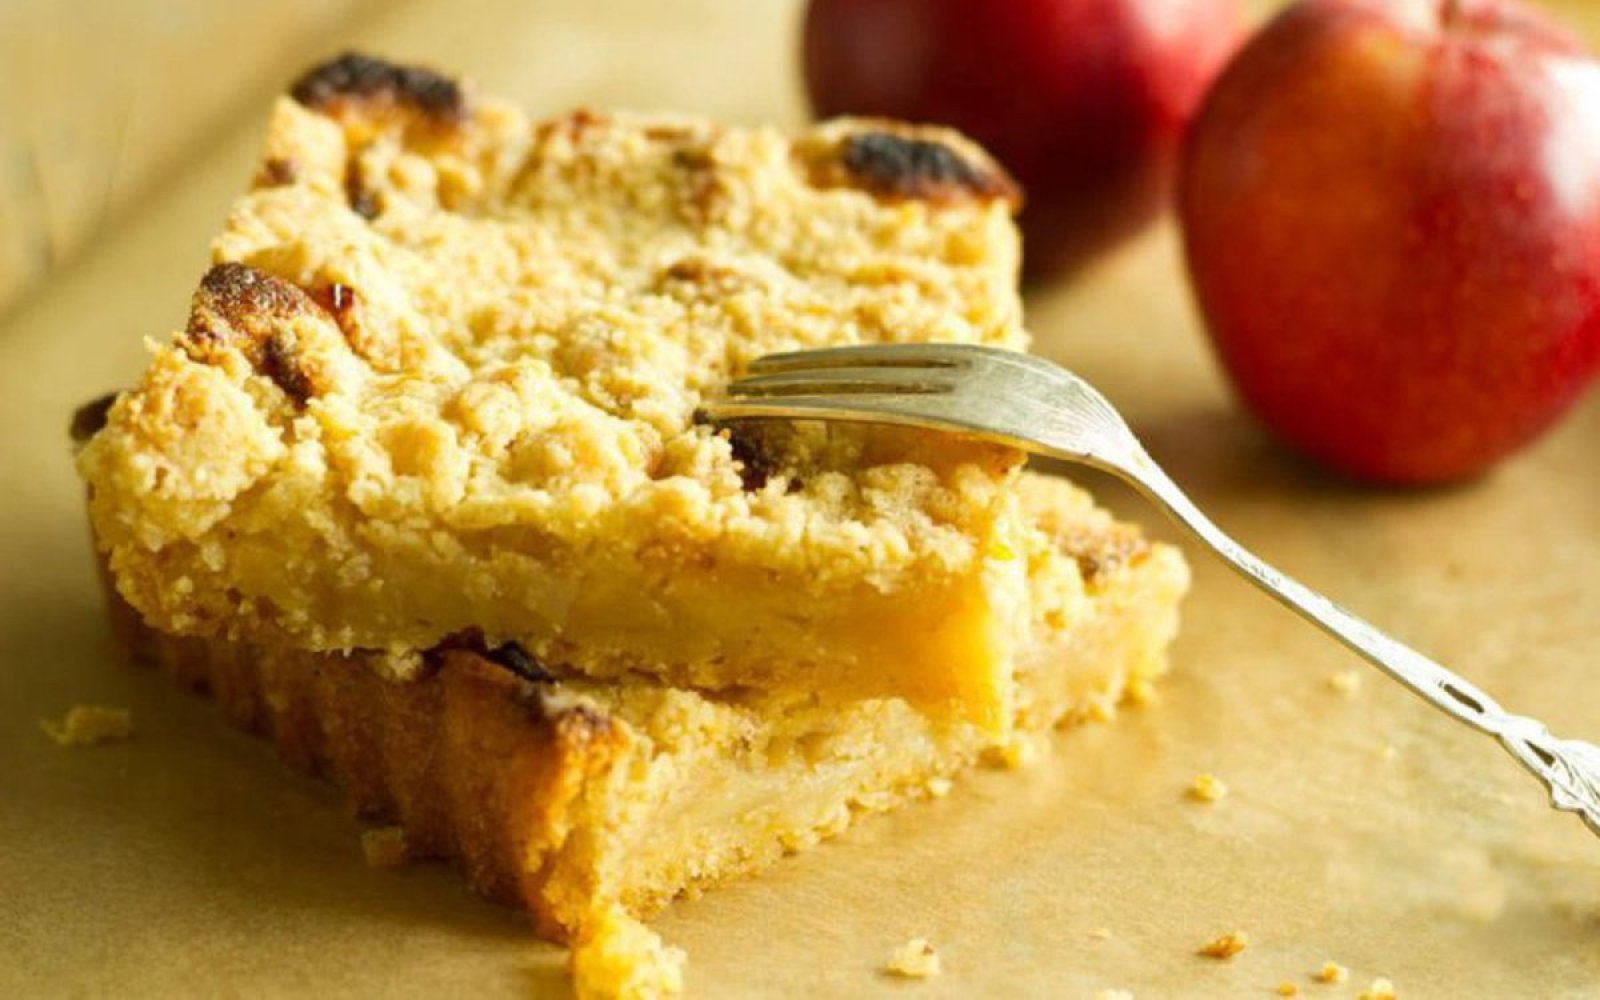 Vegan Gluten-Free Apfelkuchen: German Apple Cake in squares stacked